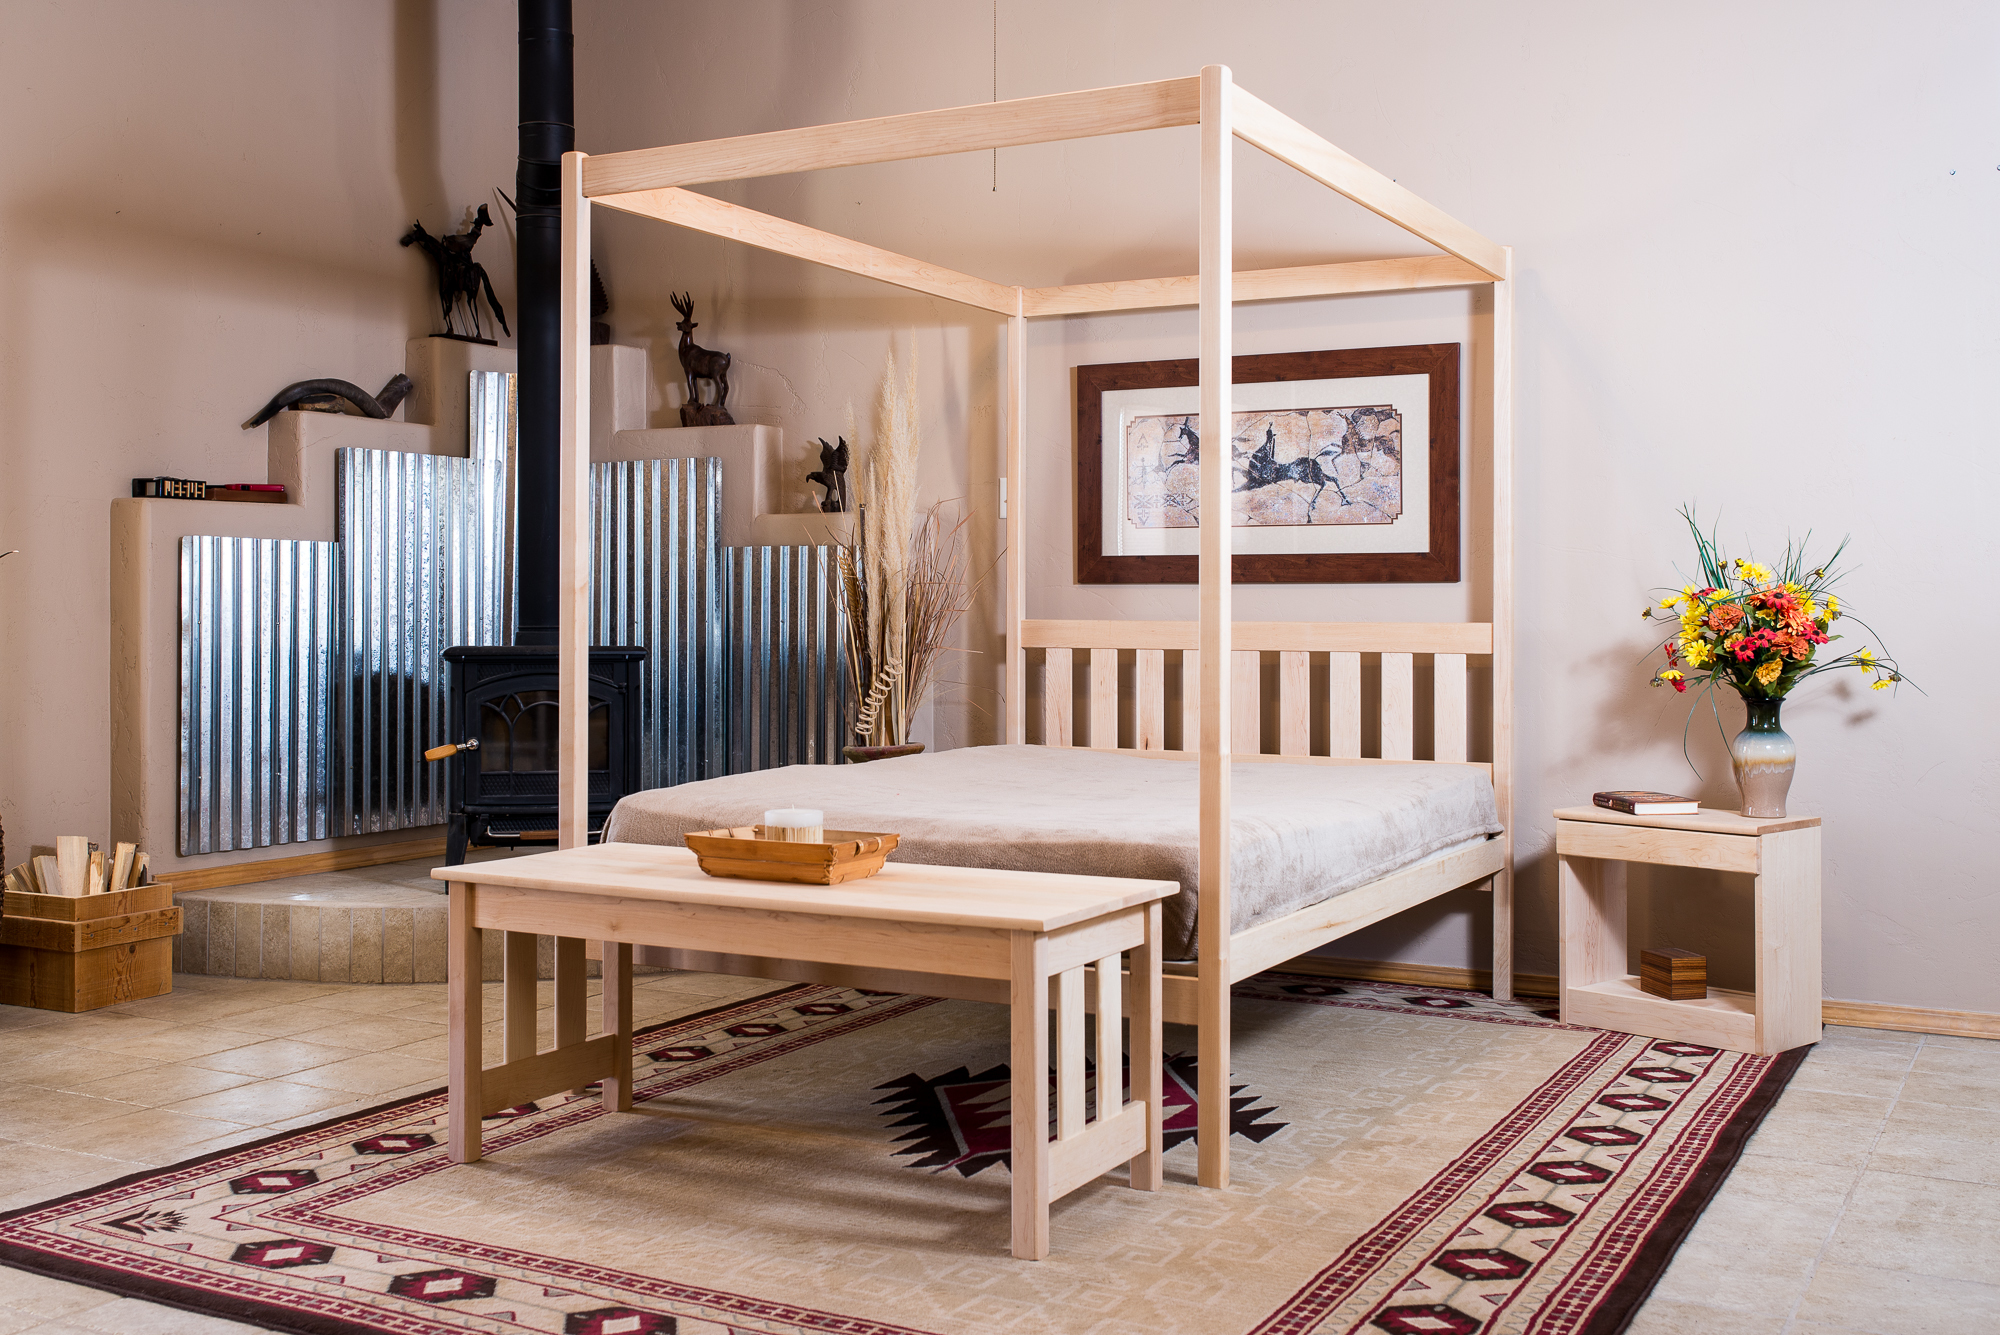 Nomad Furniture Capitan 4 Poster Bed In Oak Or Maple